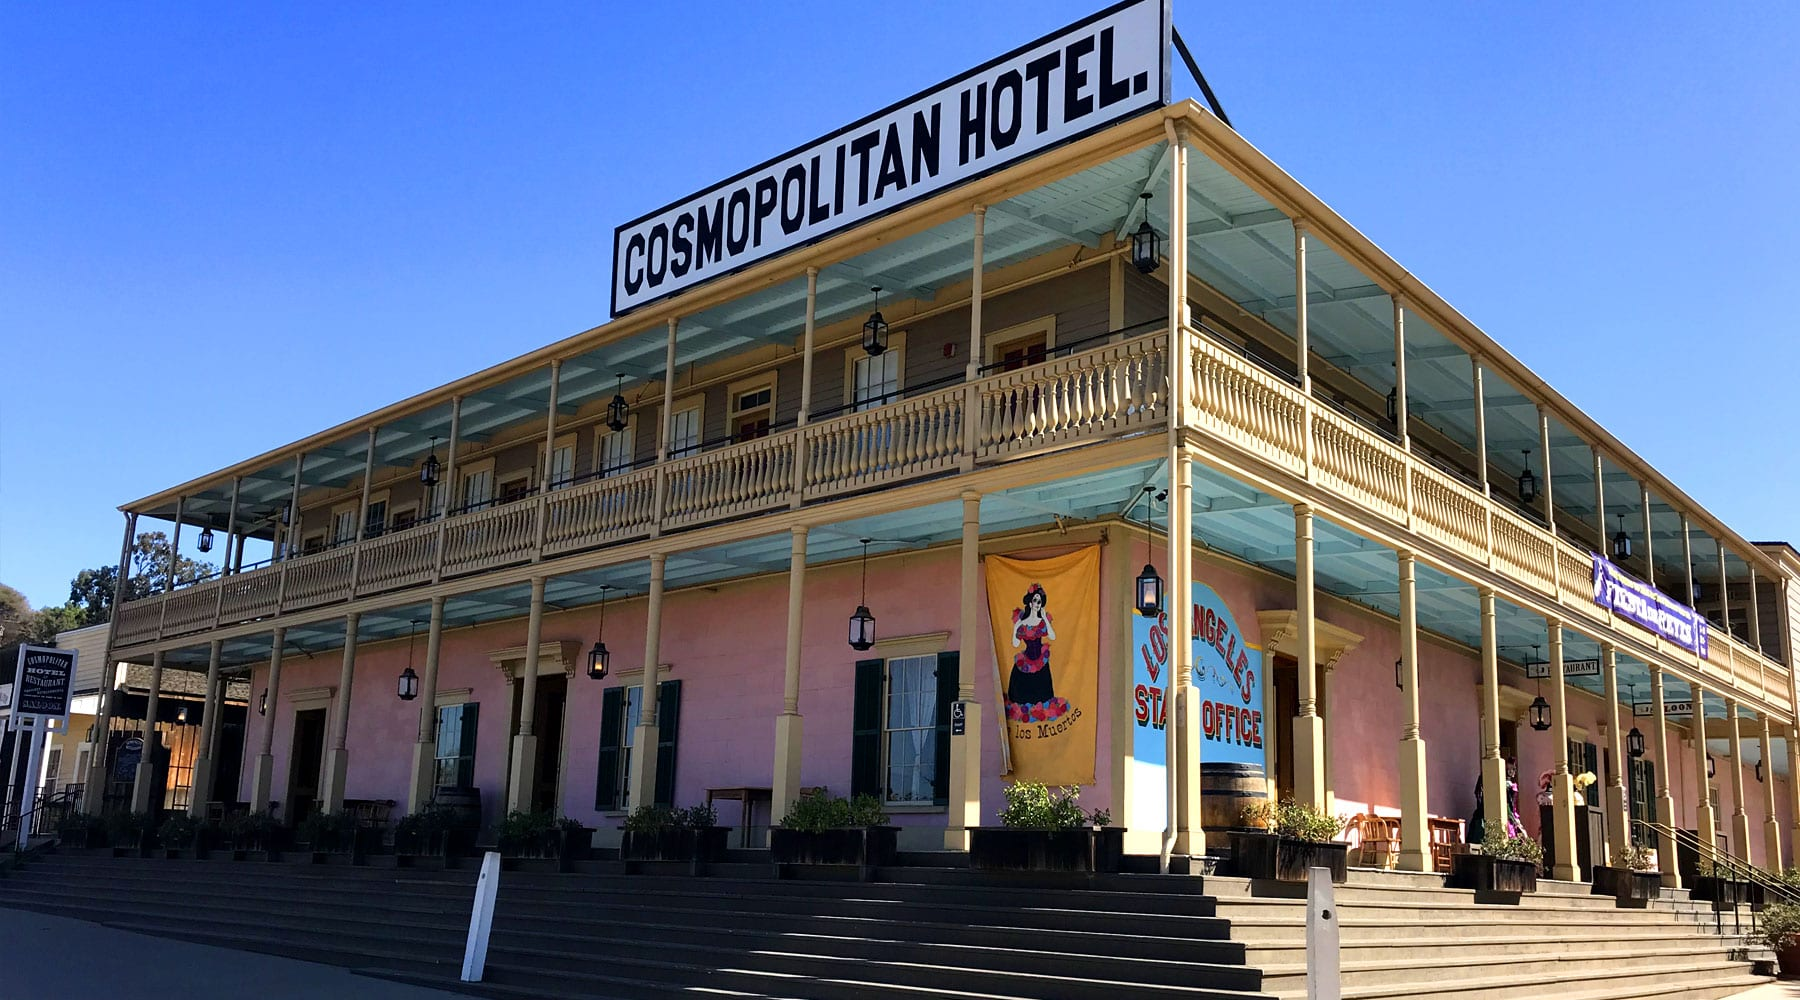 Cosmopolitan Hotel and Restaurant